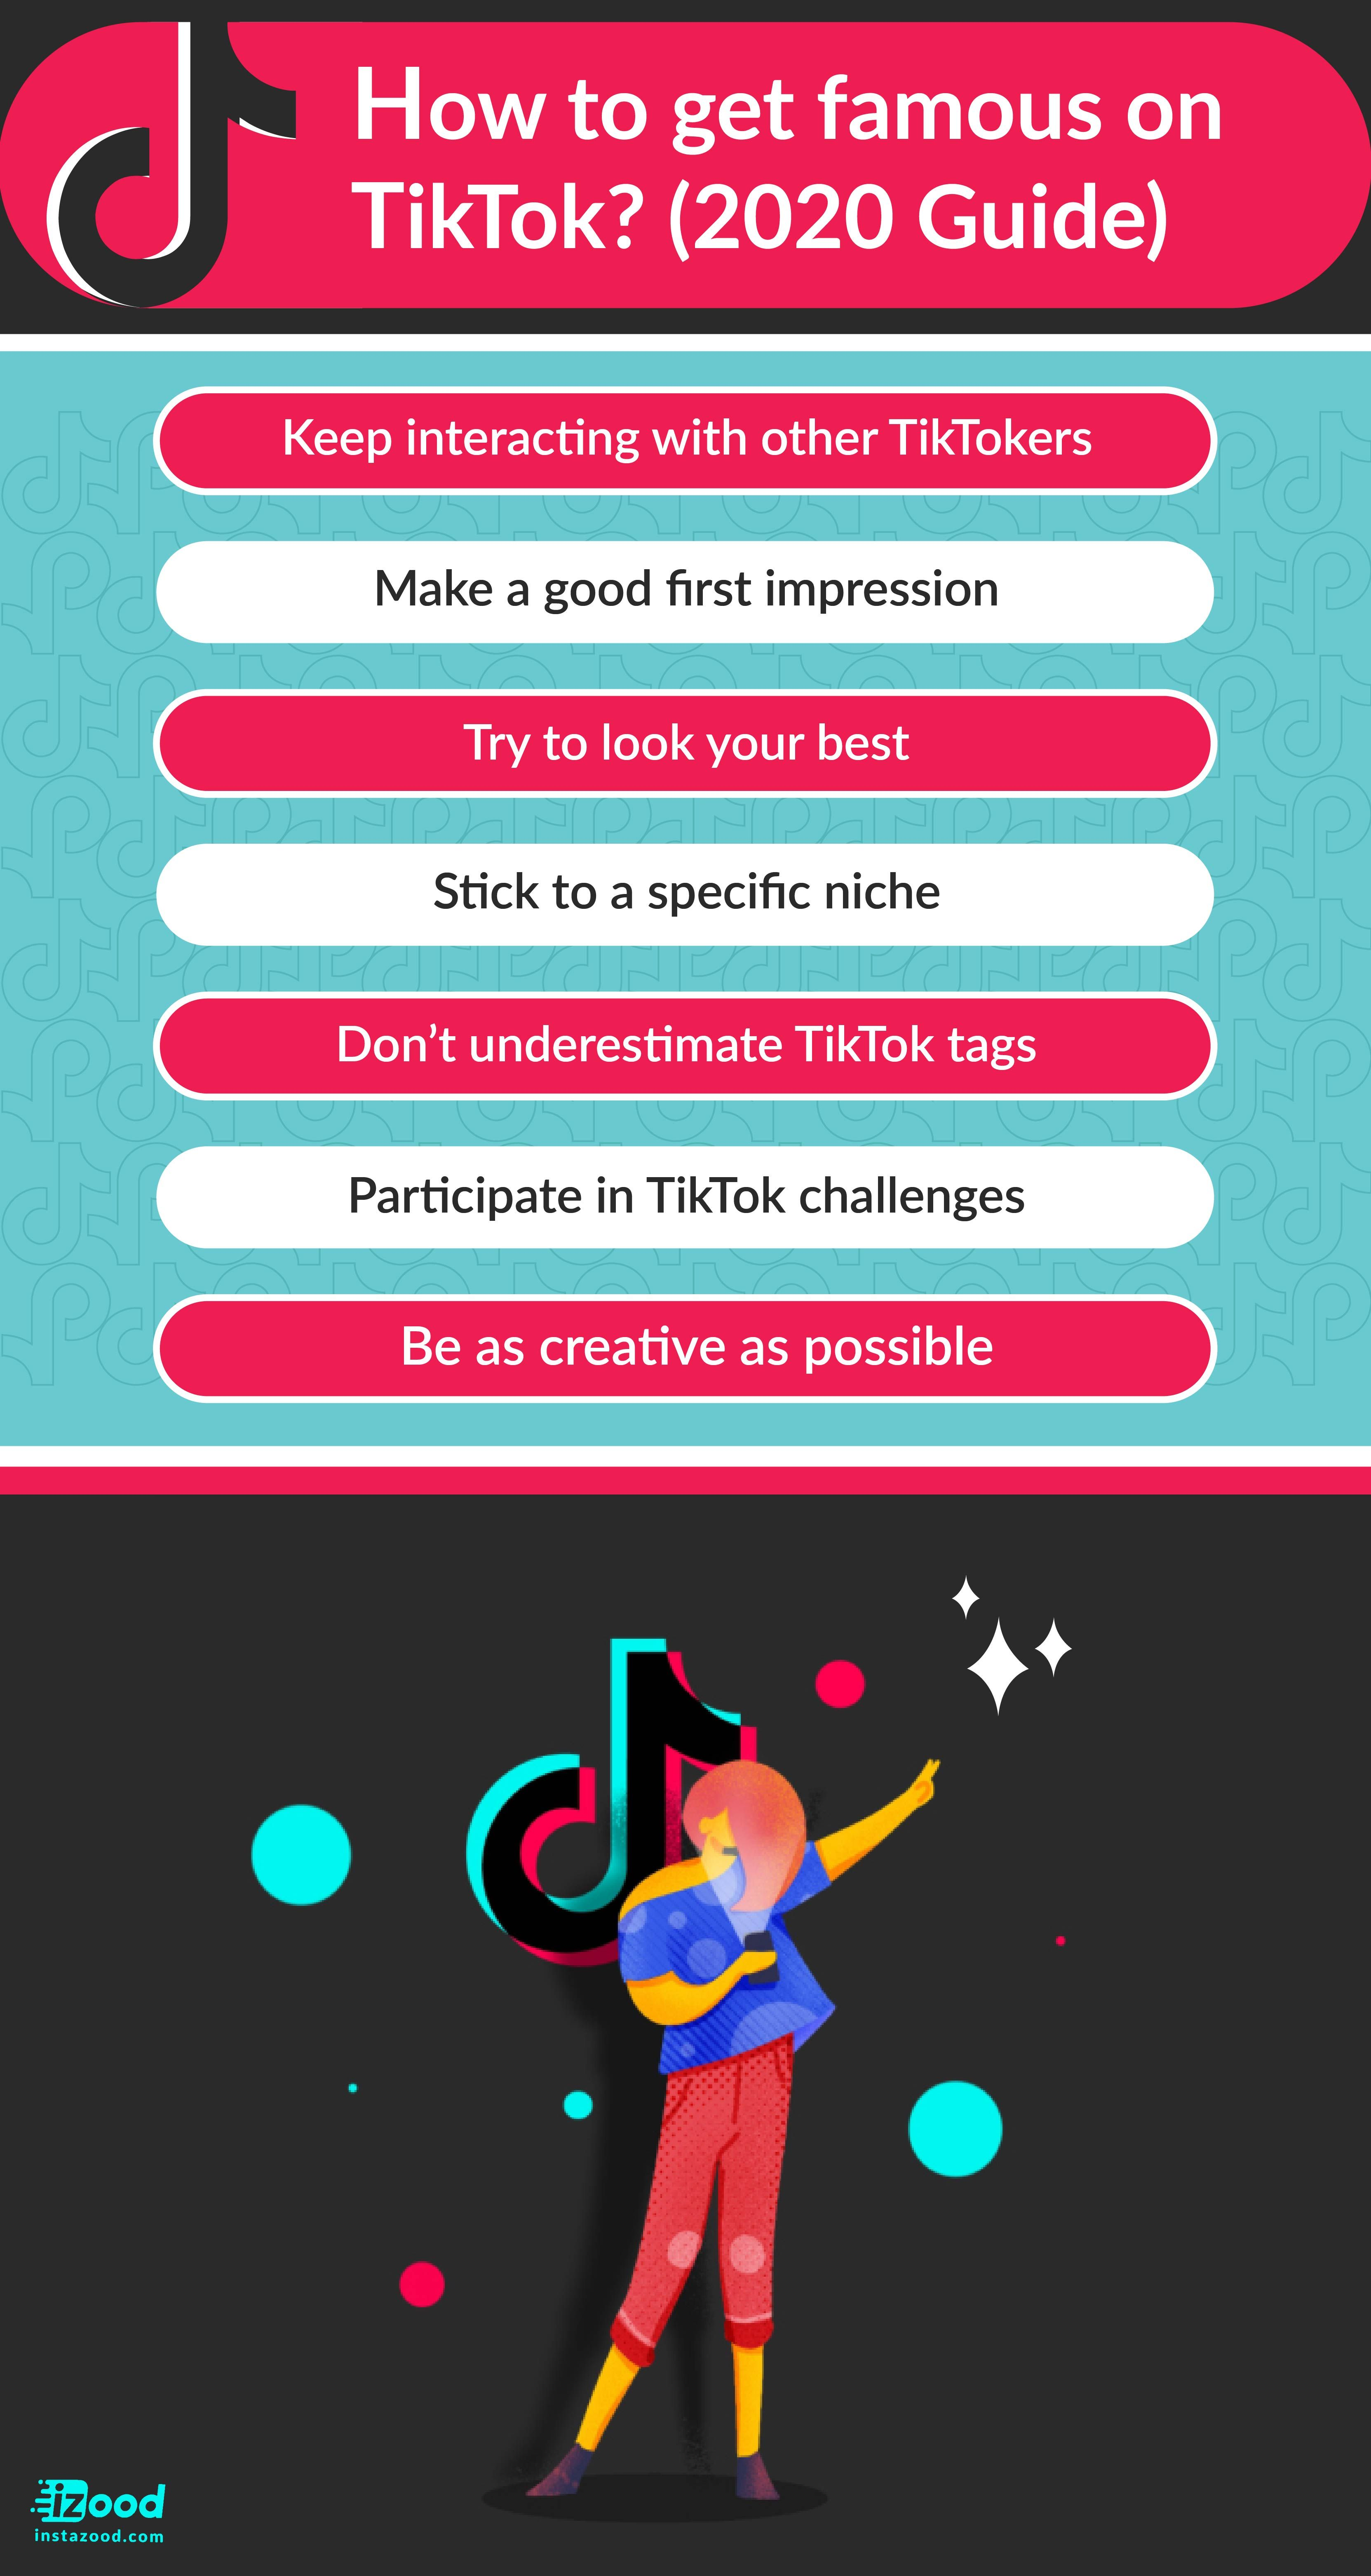 How To Get Famous On Tiktok 2020 Guide Instazood Blog How To Get Famous Snapchat Marketing Social Media Advice